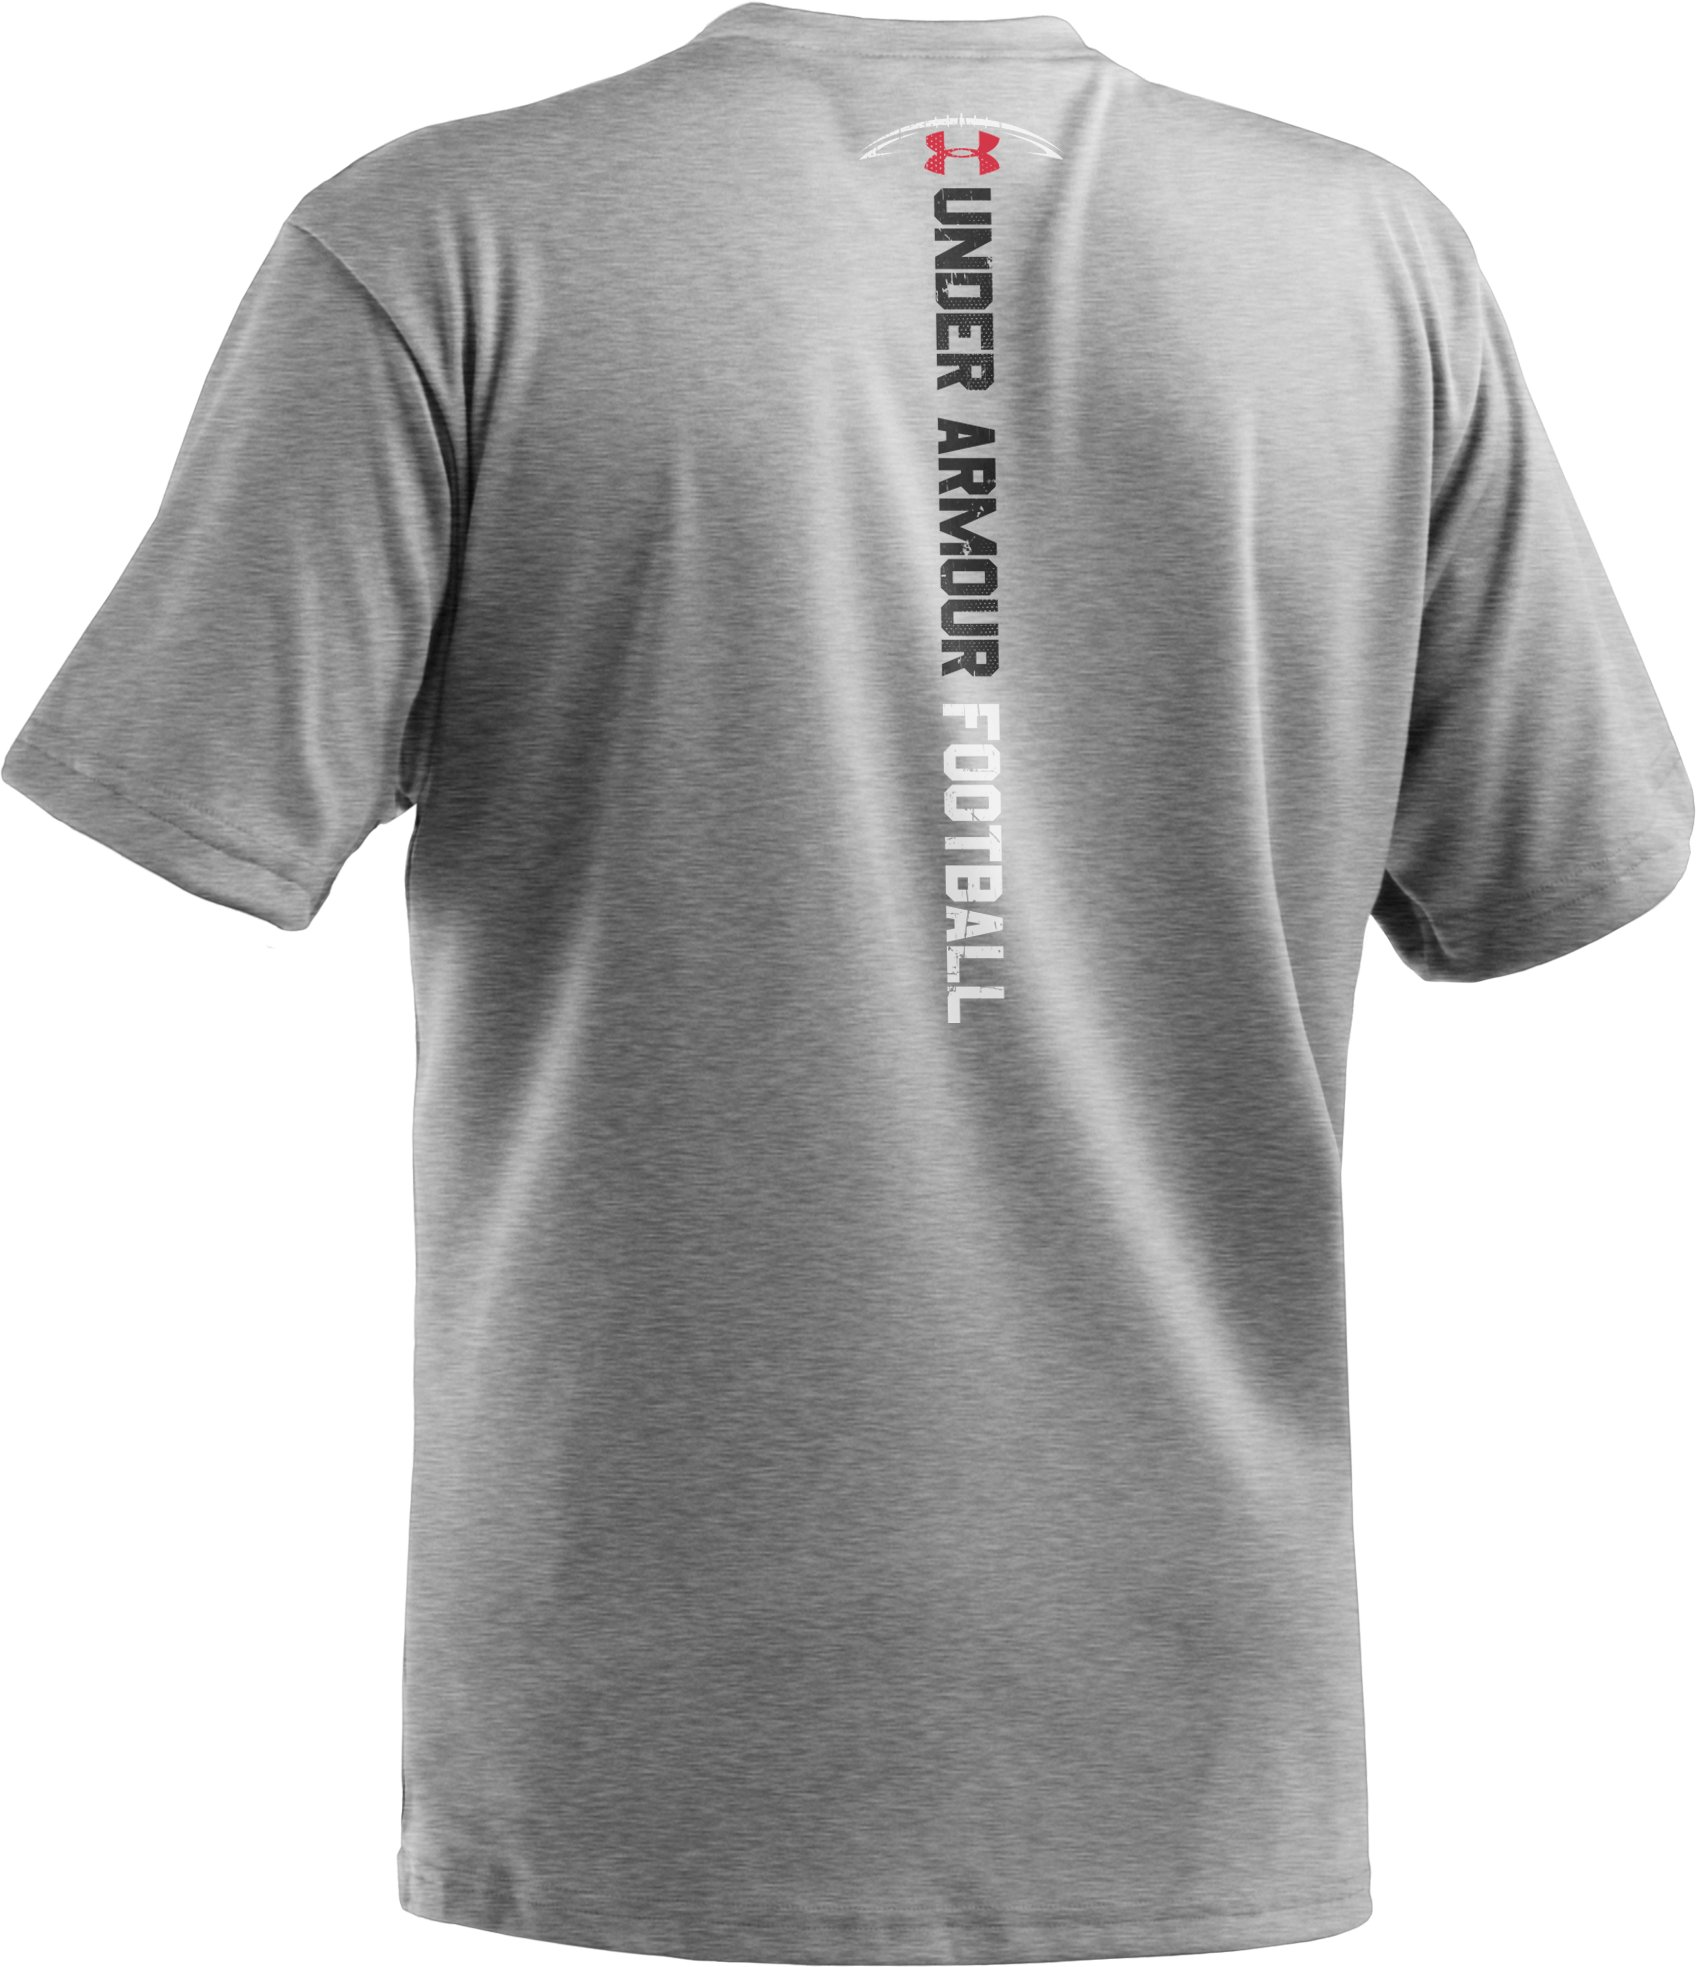 Boys' UA Hard Hits Graphic T-Shirt, True Gray Heather, undefined